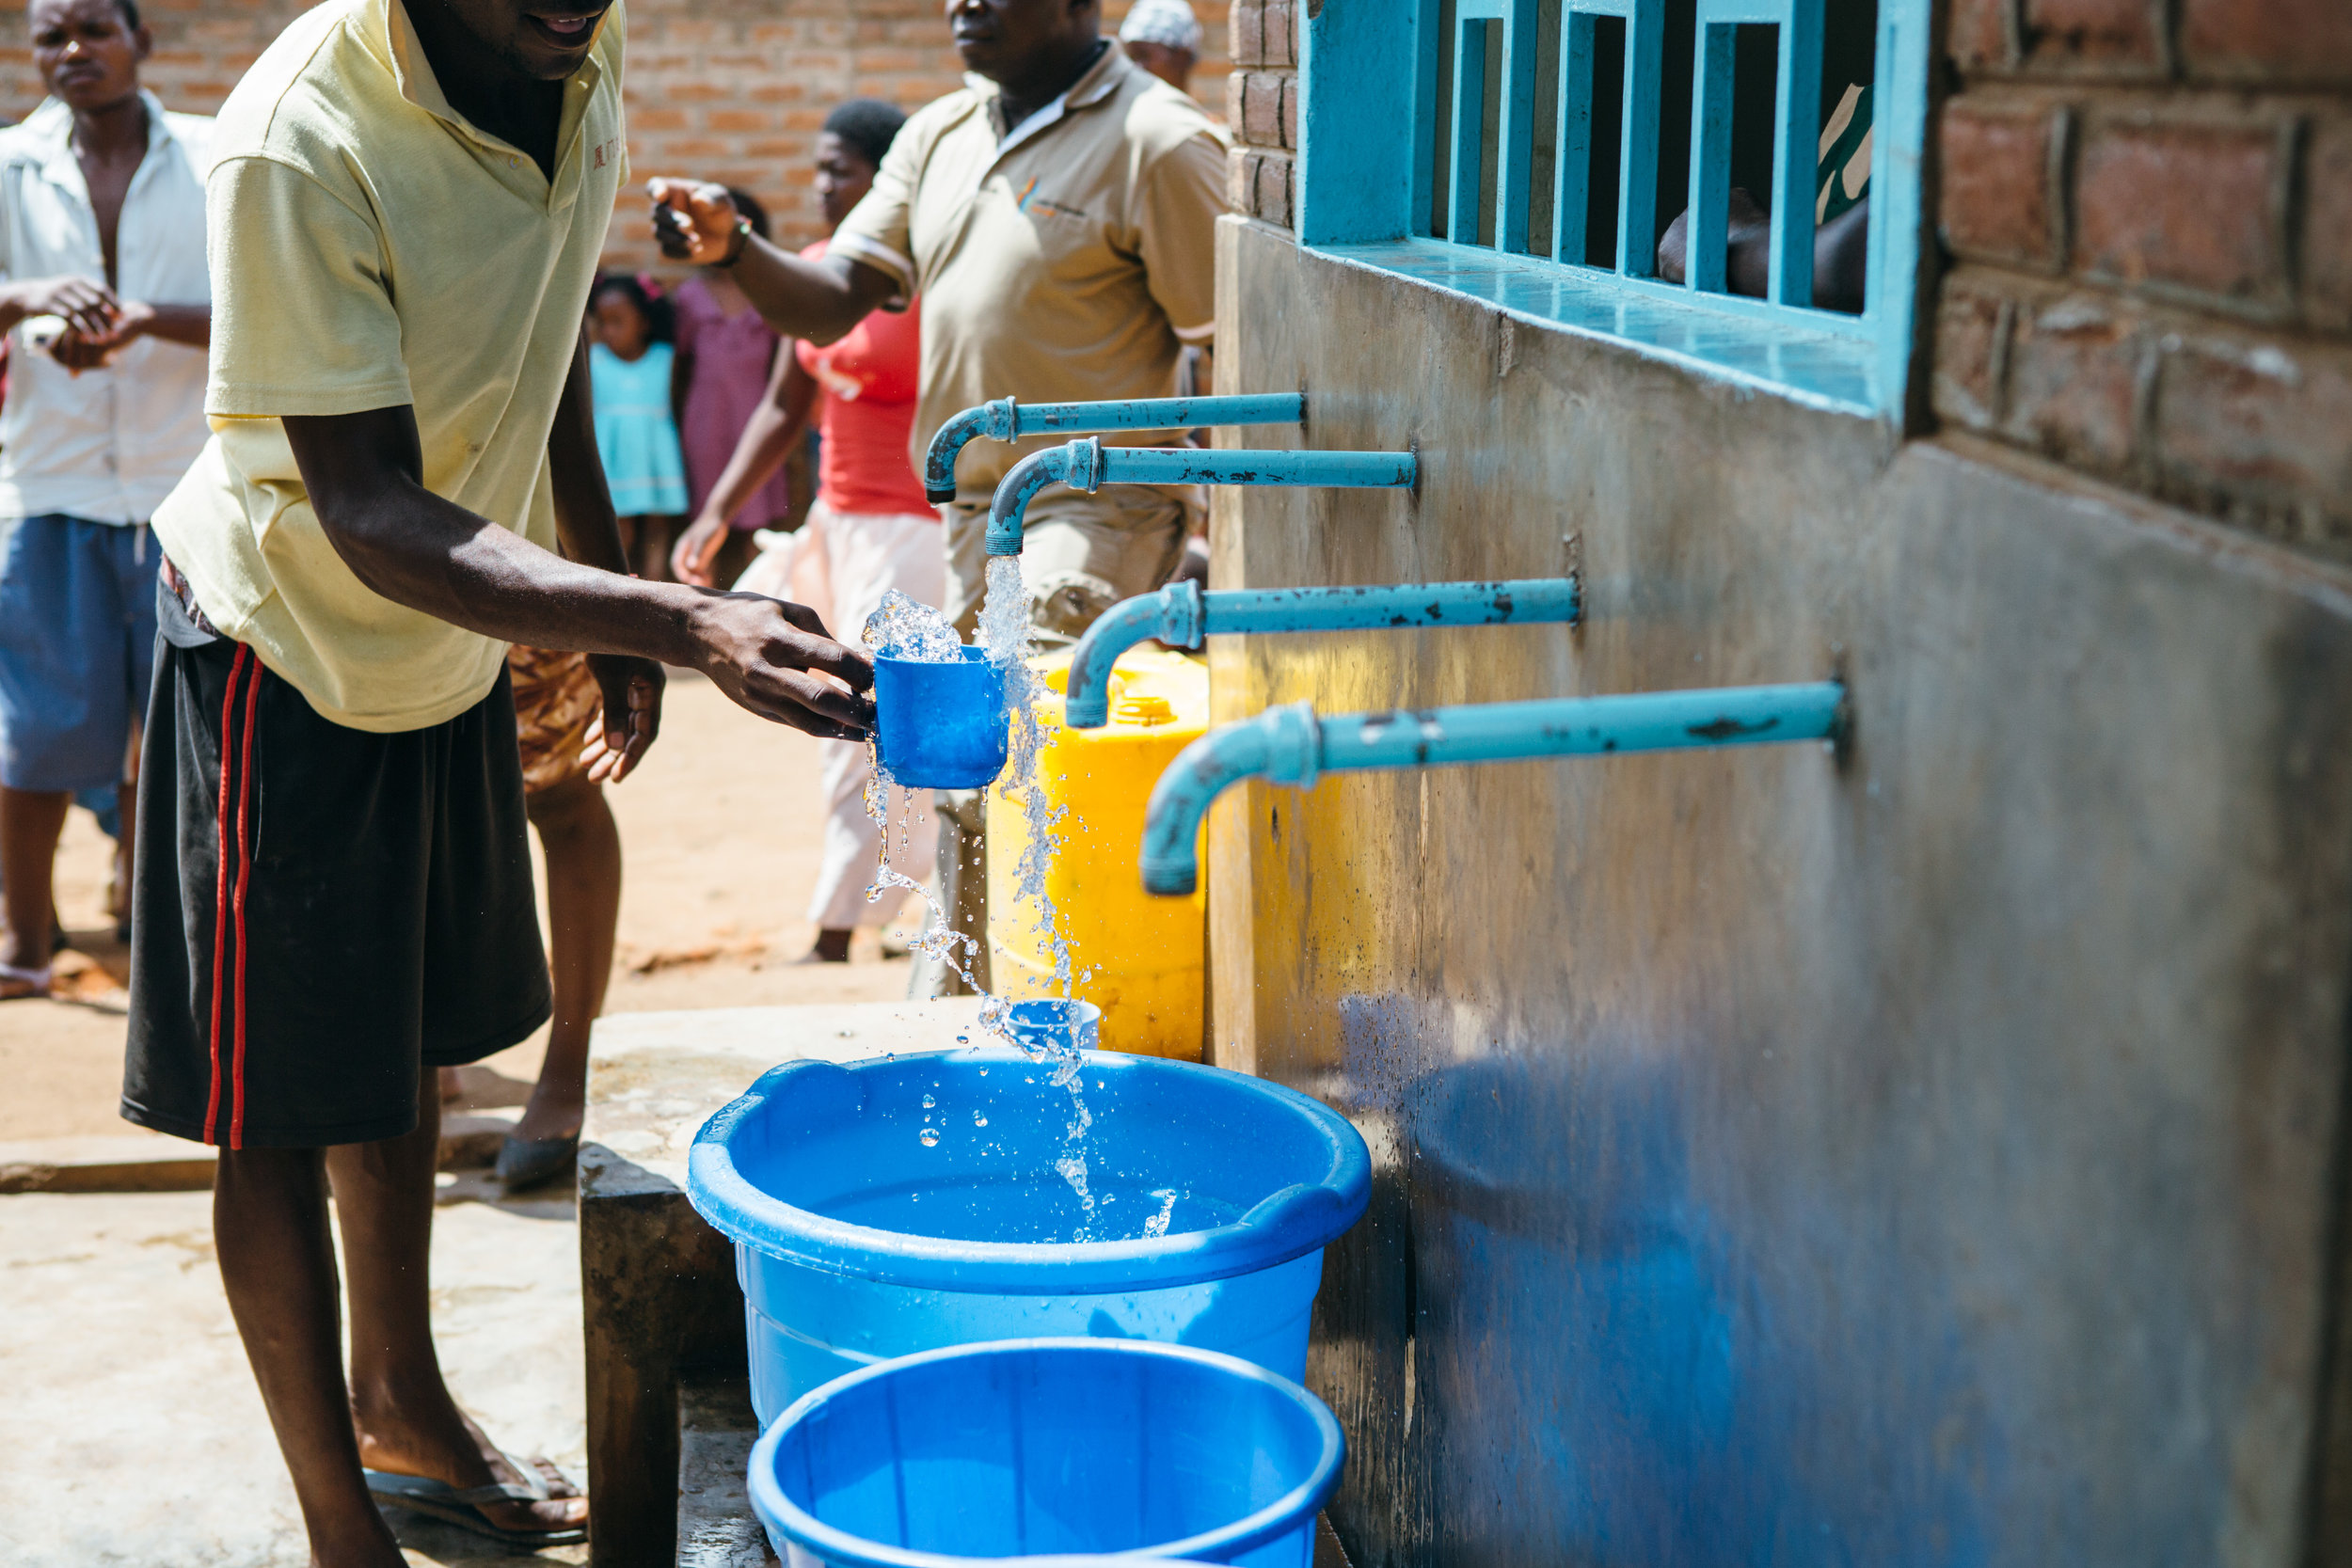 read the stories from people that now have access to clean drinking water and sanitation -